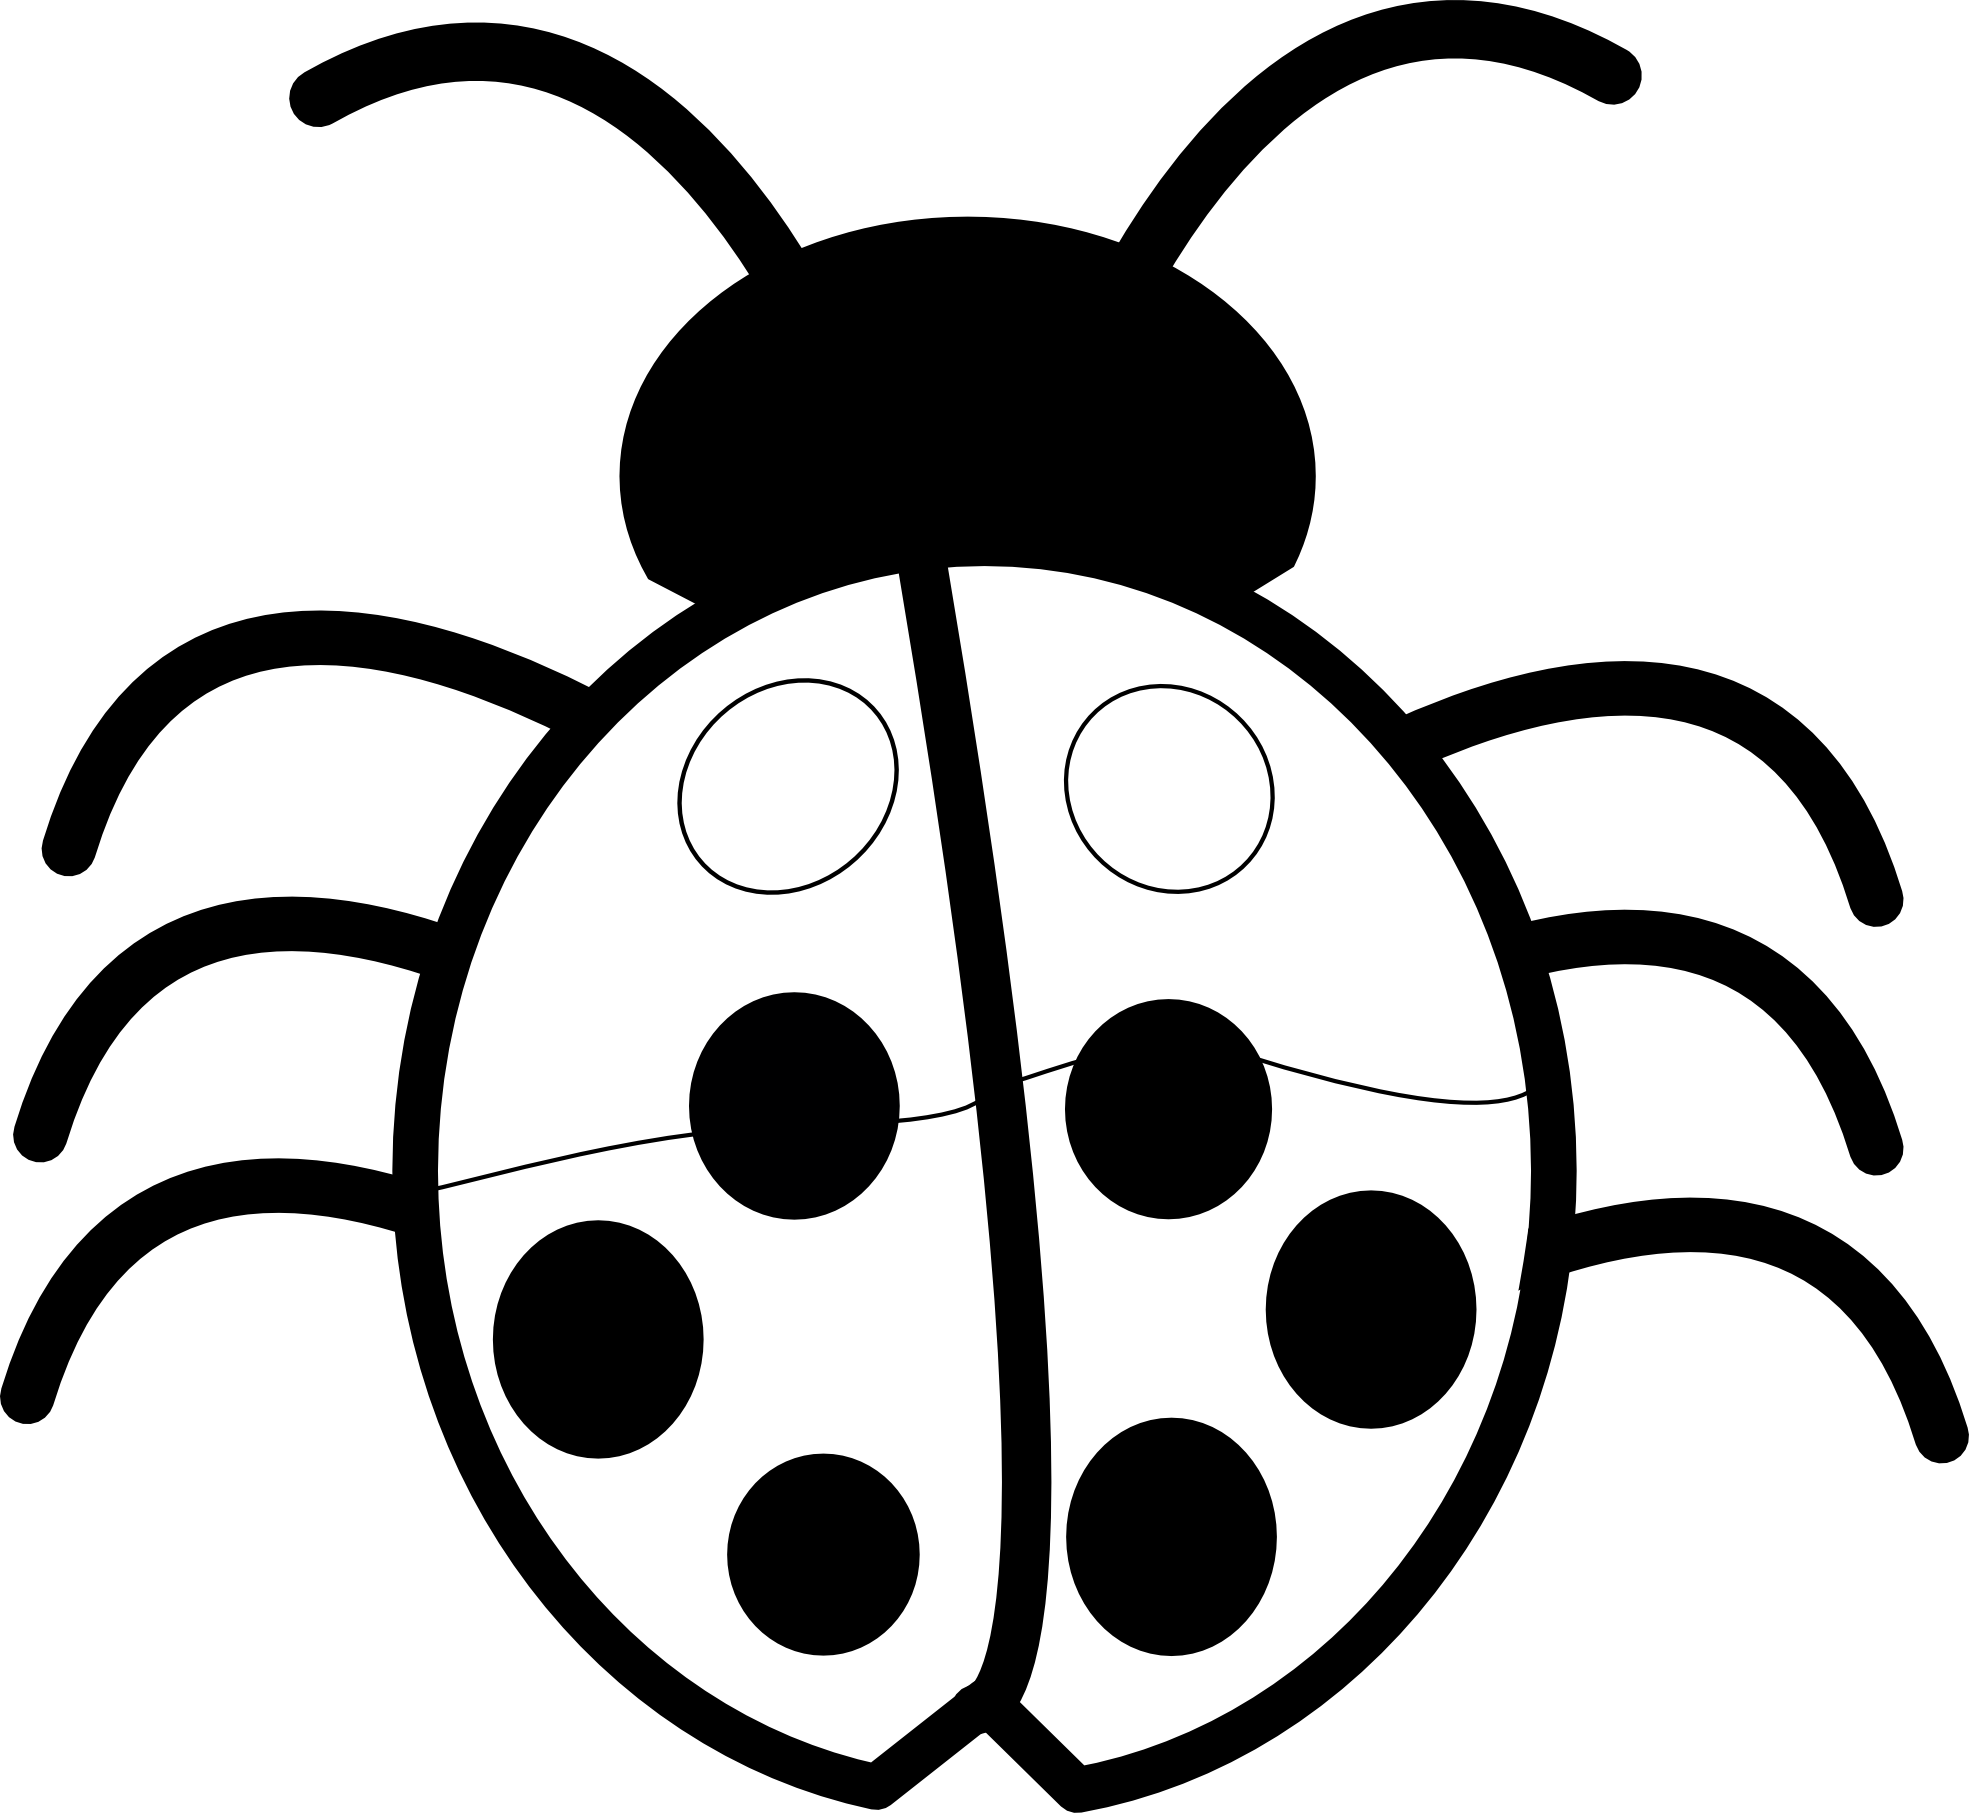 Ladybug Black And White Clipart image tips.